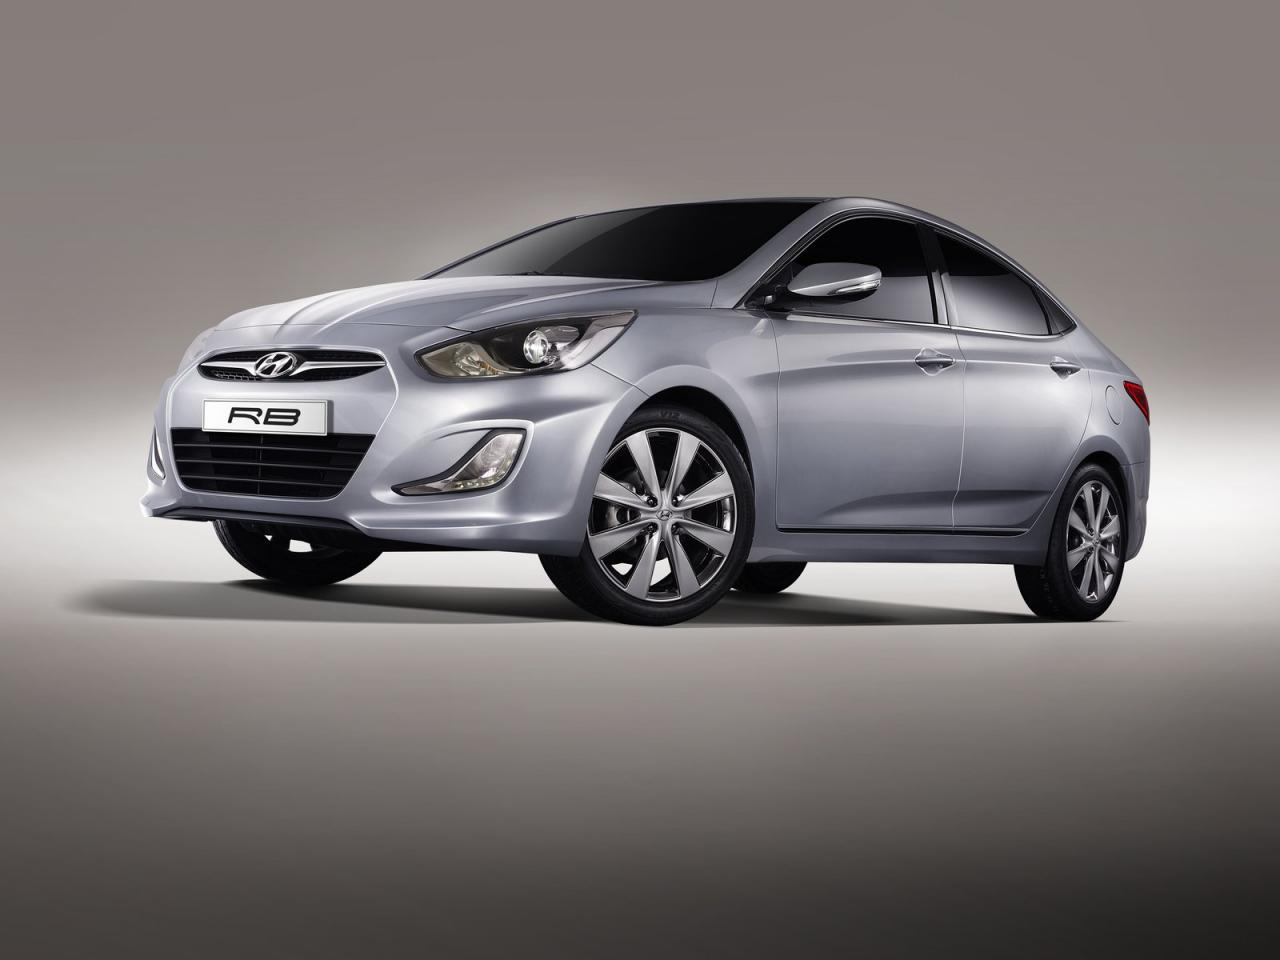 Hyundai accent rb concept car unveiled at the 2010 moscow auto show